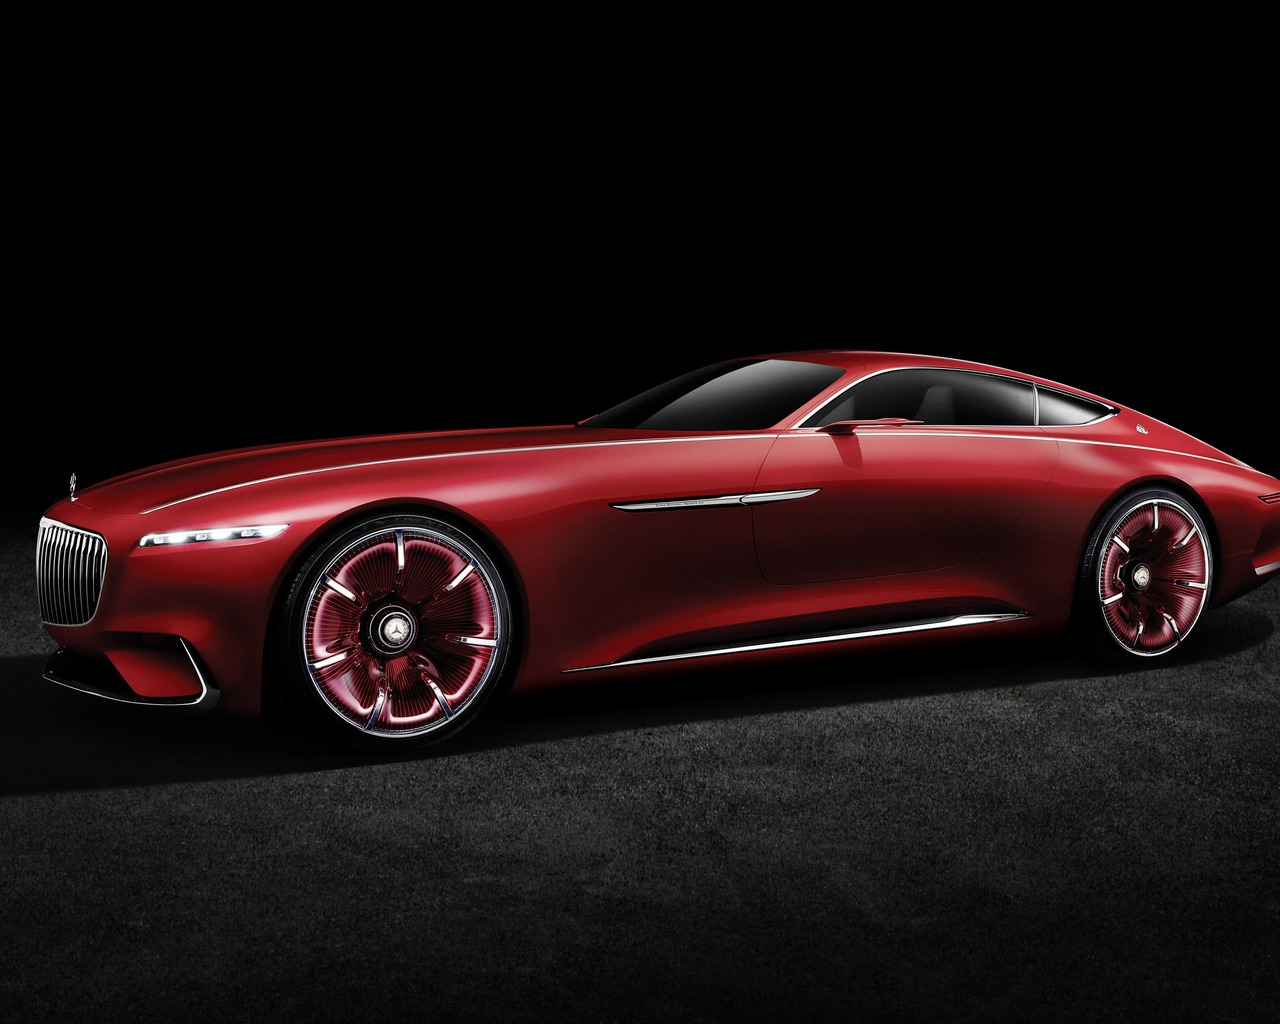 2016 Vision Mercedes Maybach 6 Side View for 1280 x 1024 resolution